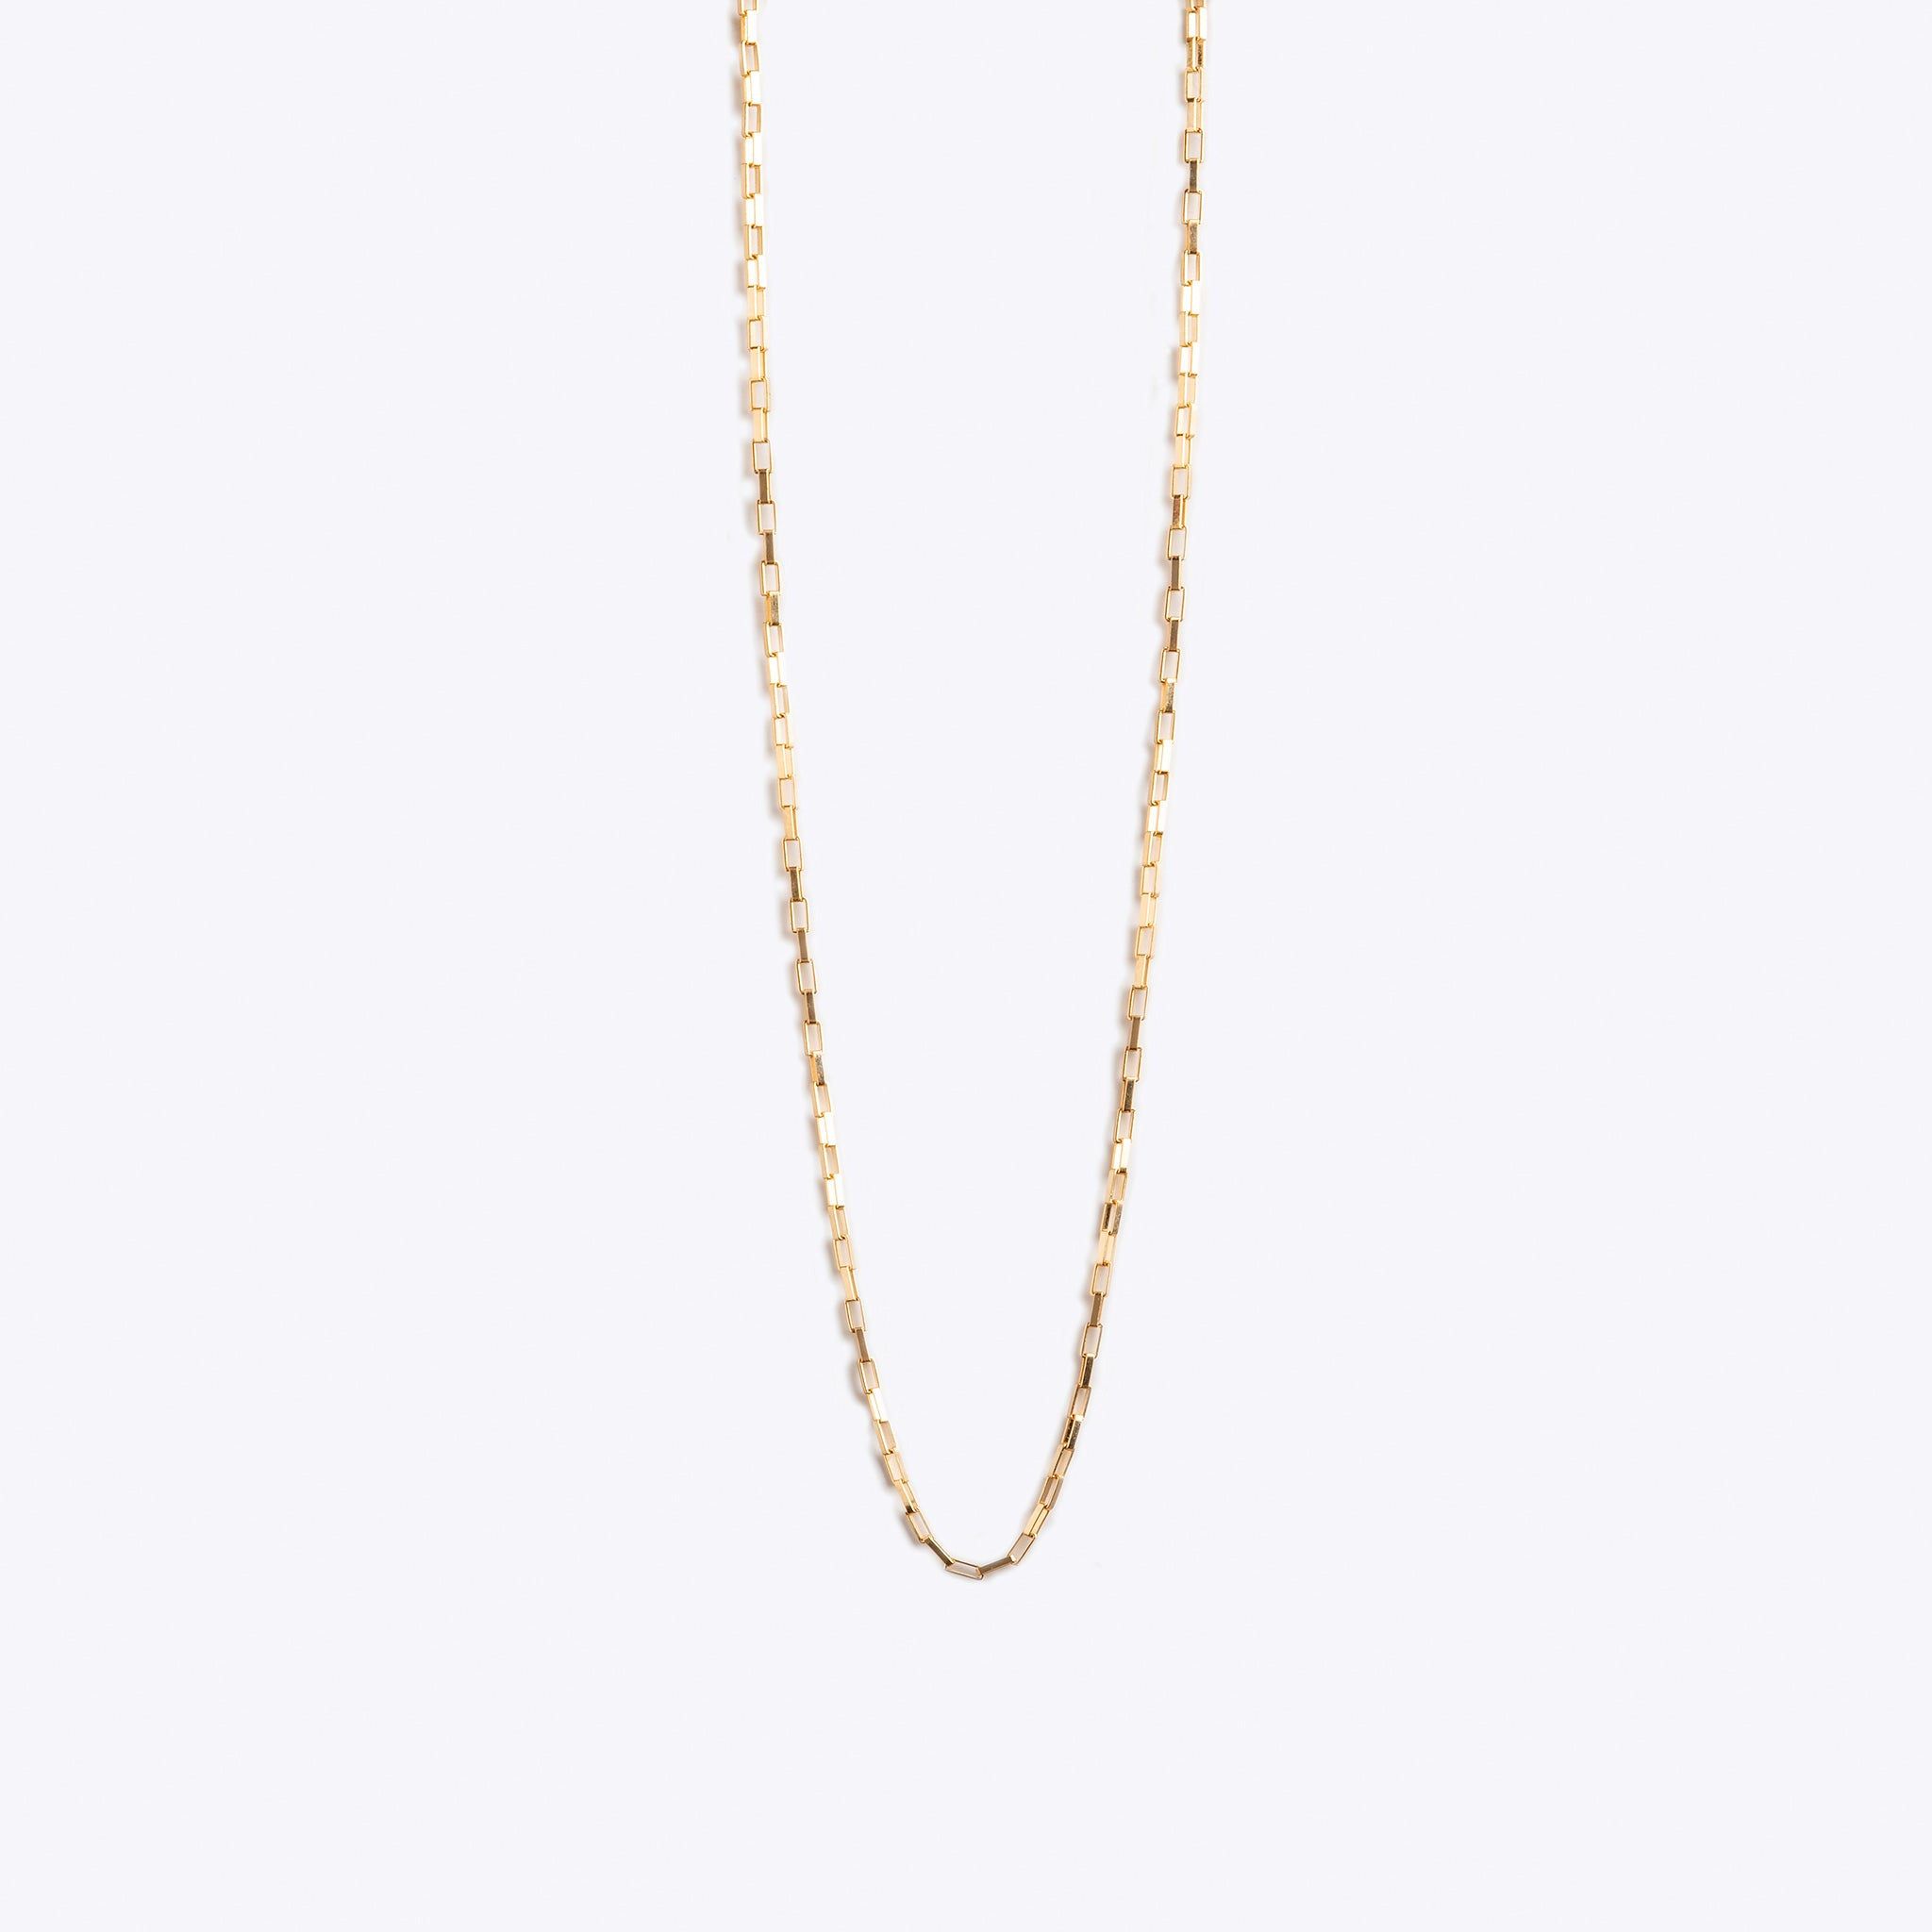 Wanderlust Life 14k gold fill chain layering necklace. Box chain necklace 16